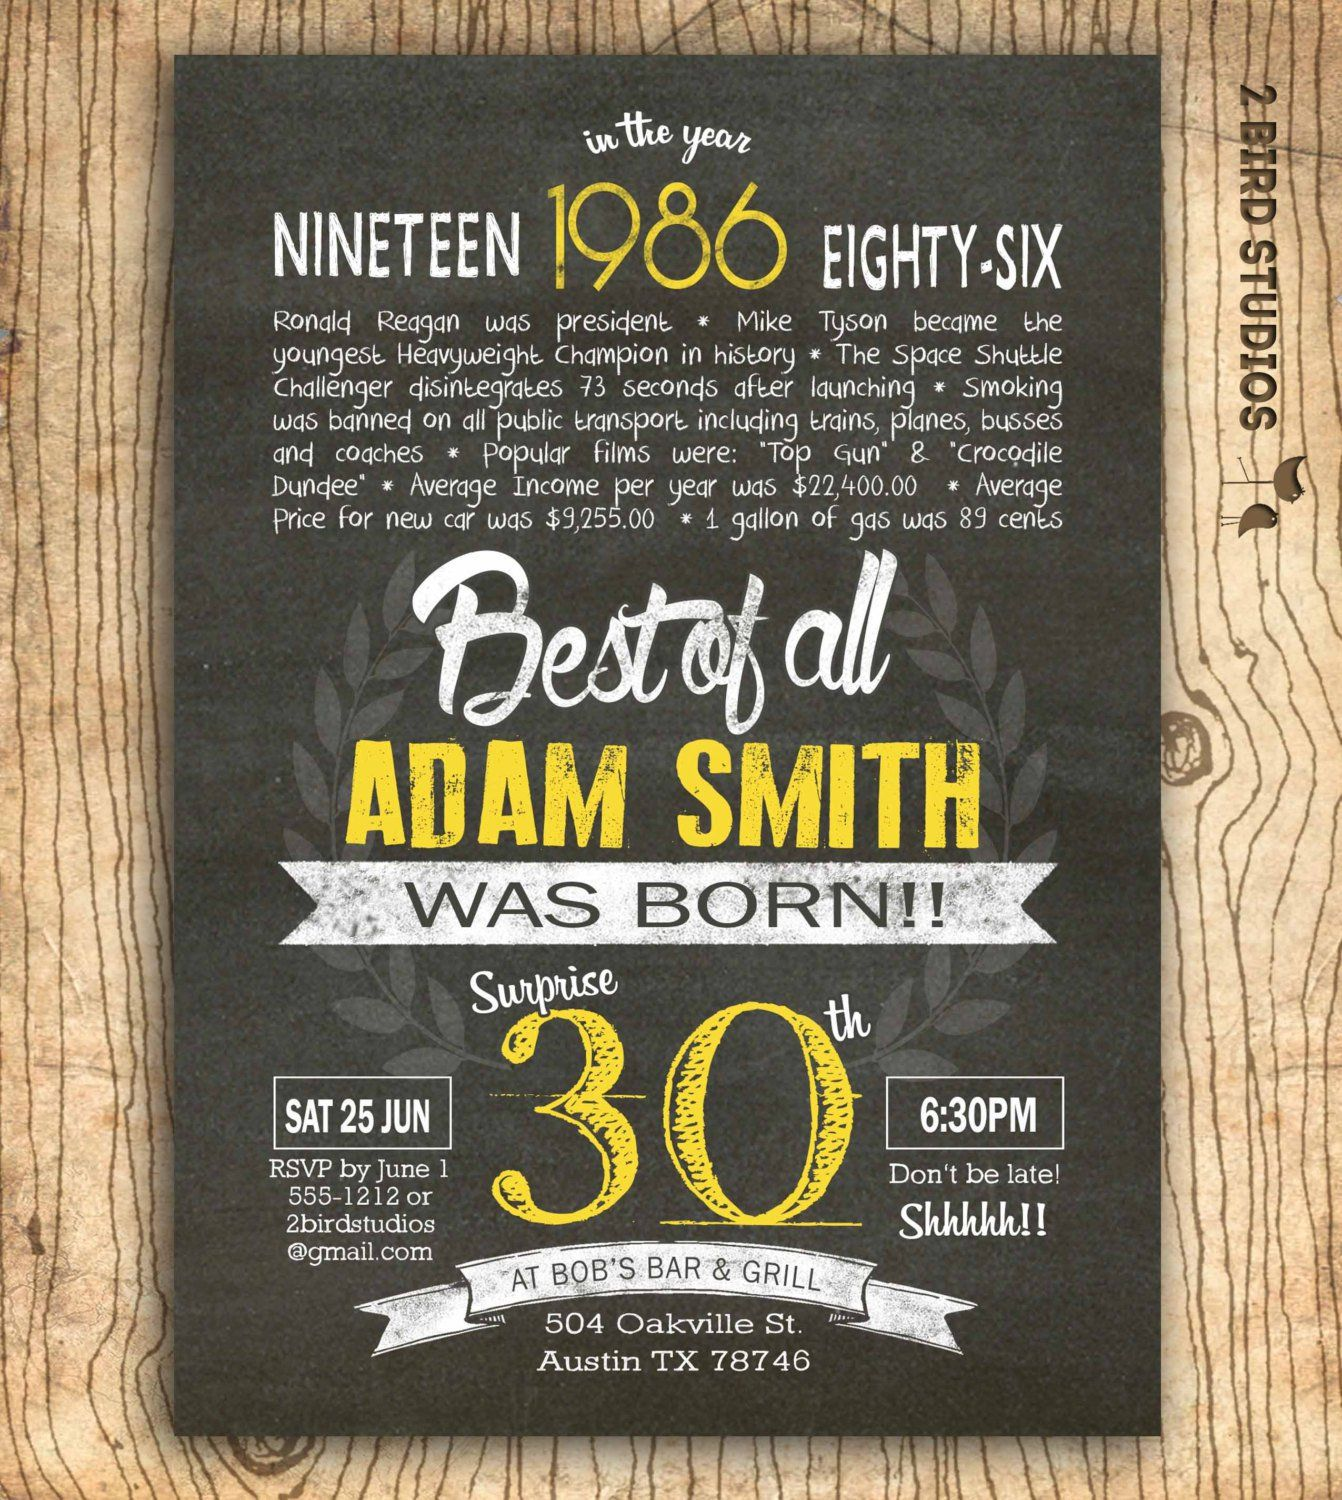 30th birthday invitations wording funny birthday invitations 30th birthday invitations wording funny filmwisefo